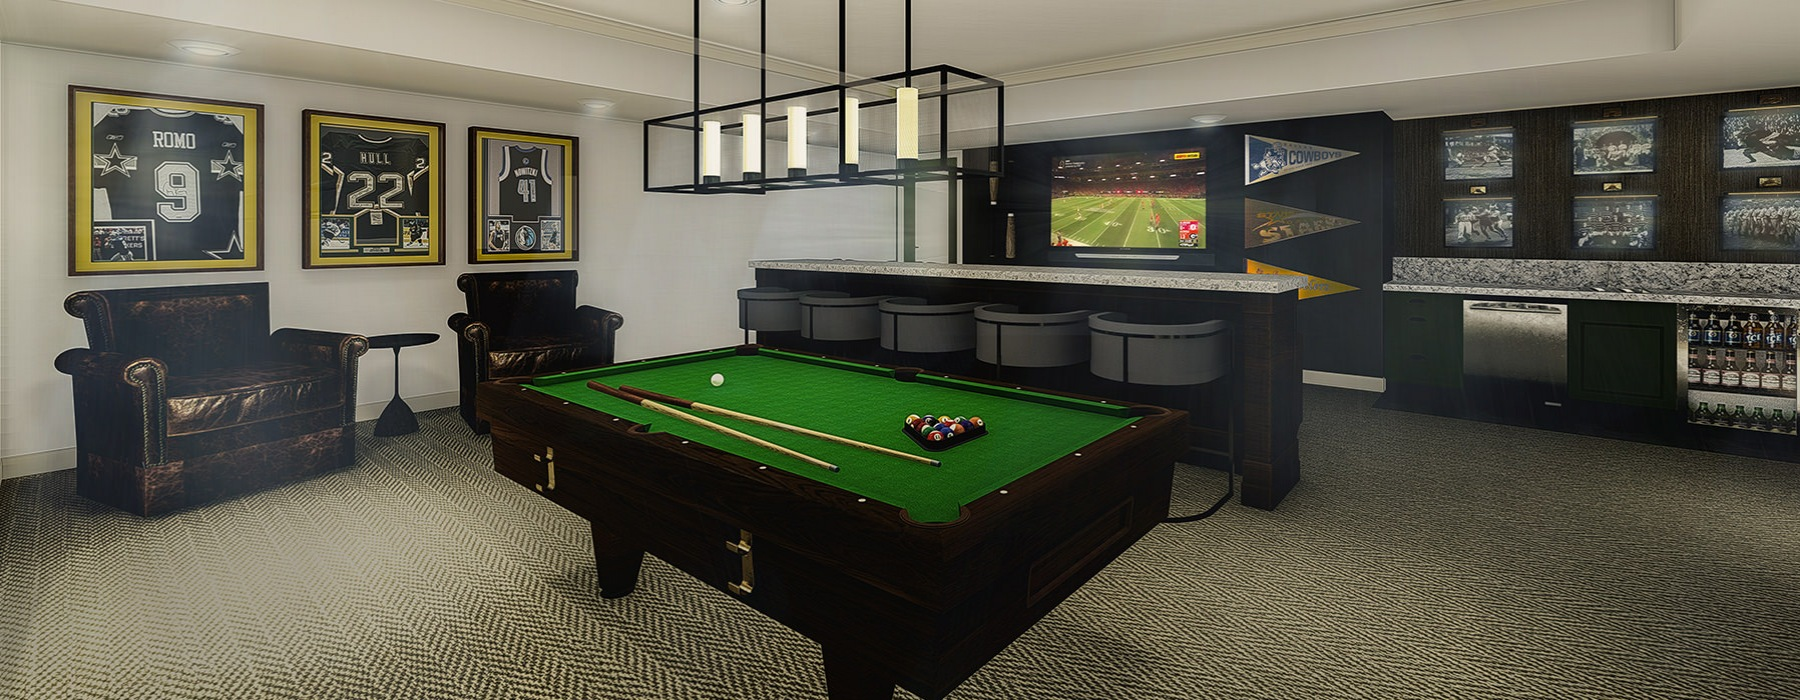 Resident lounge with billiards area and large TVs